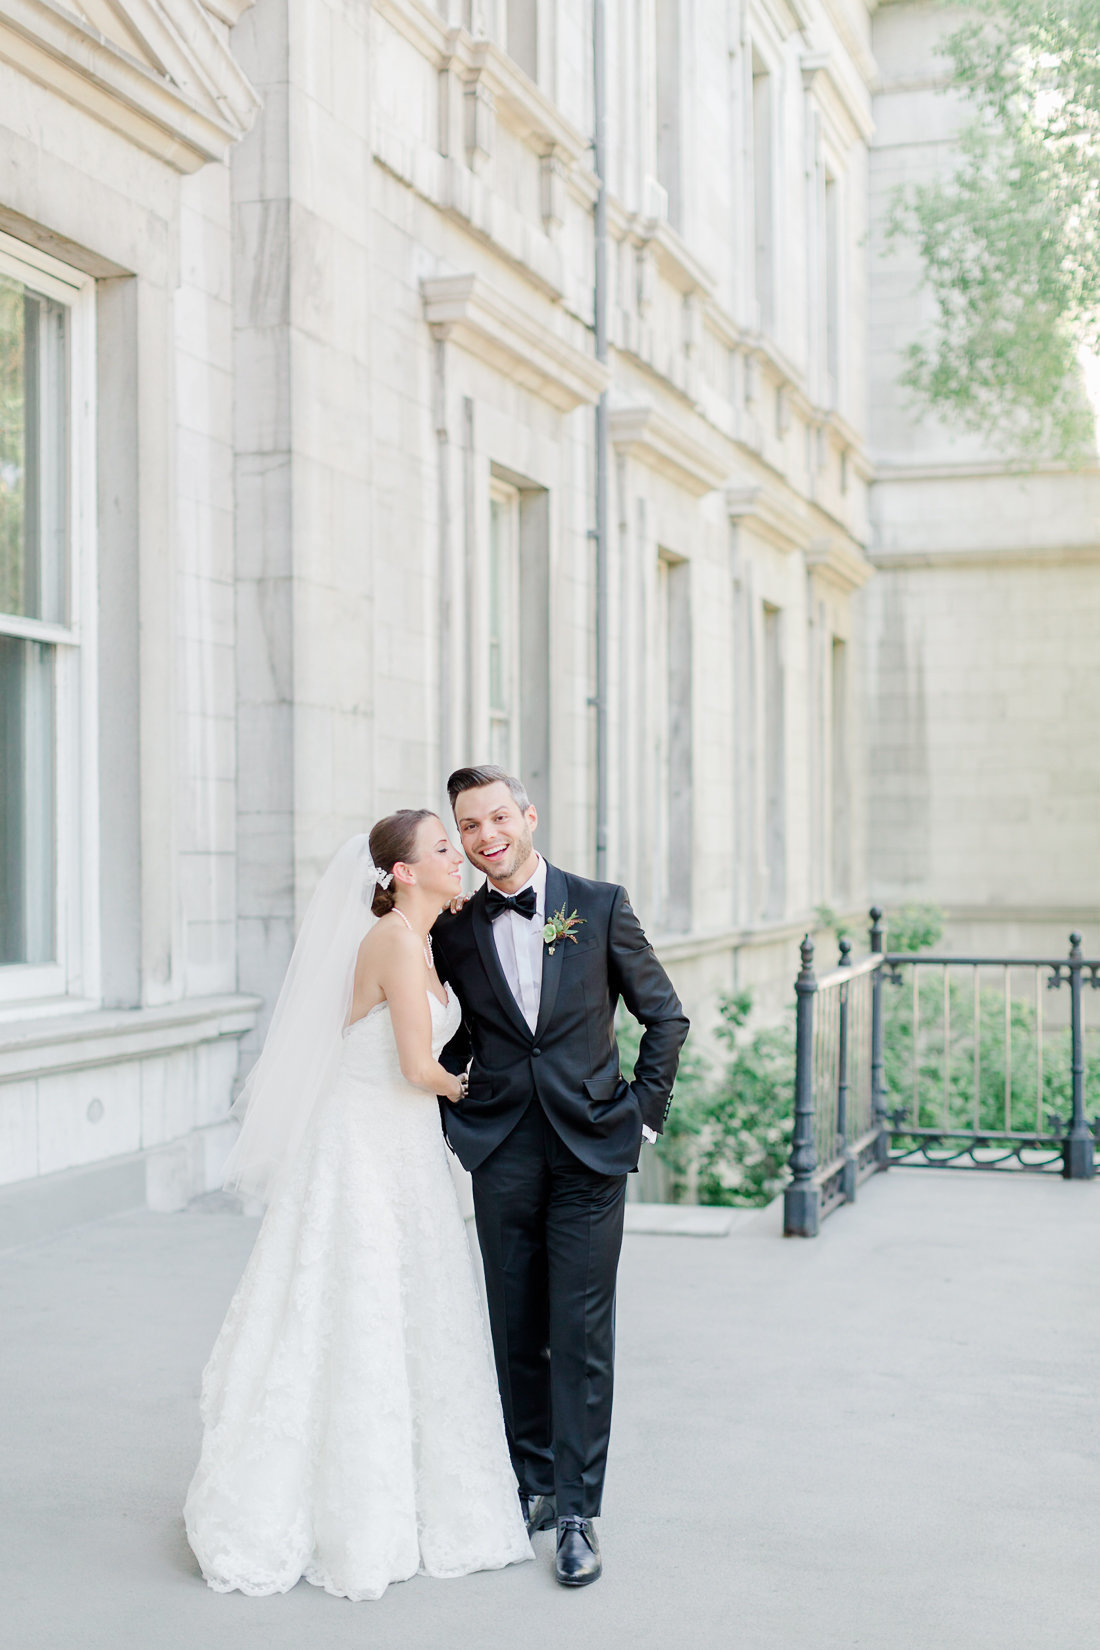 photographe-mariage-auberge-saint-gabriel-lisa-renault-photographie-montreal-wedding-photographer-46